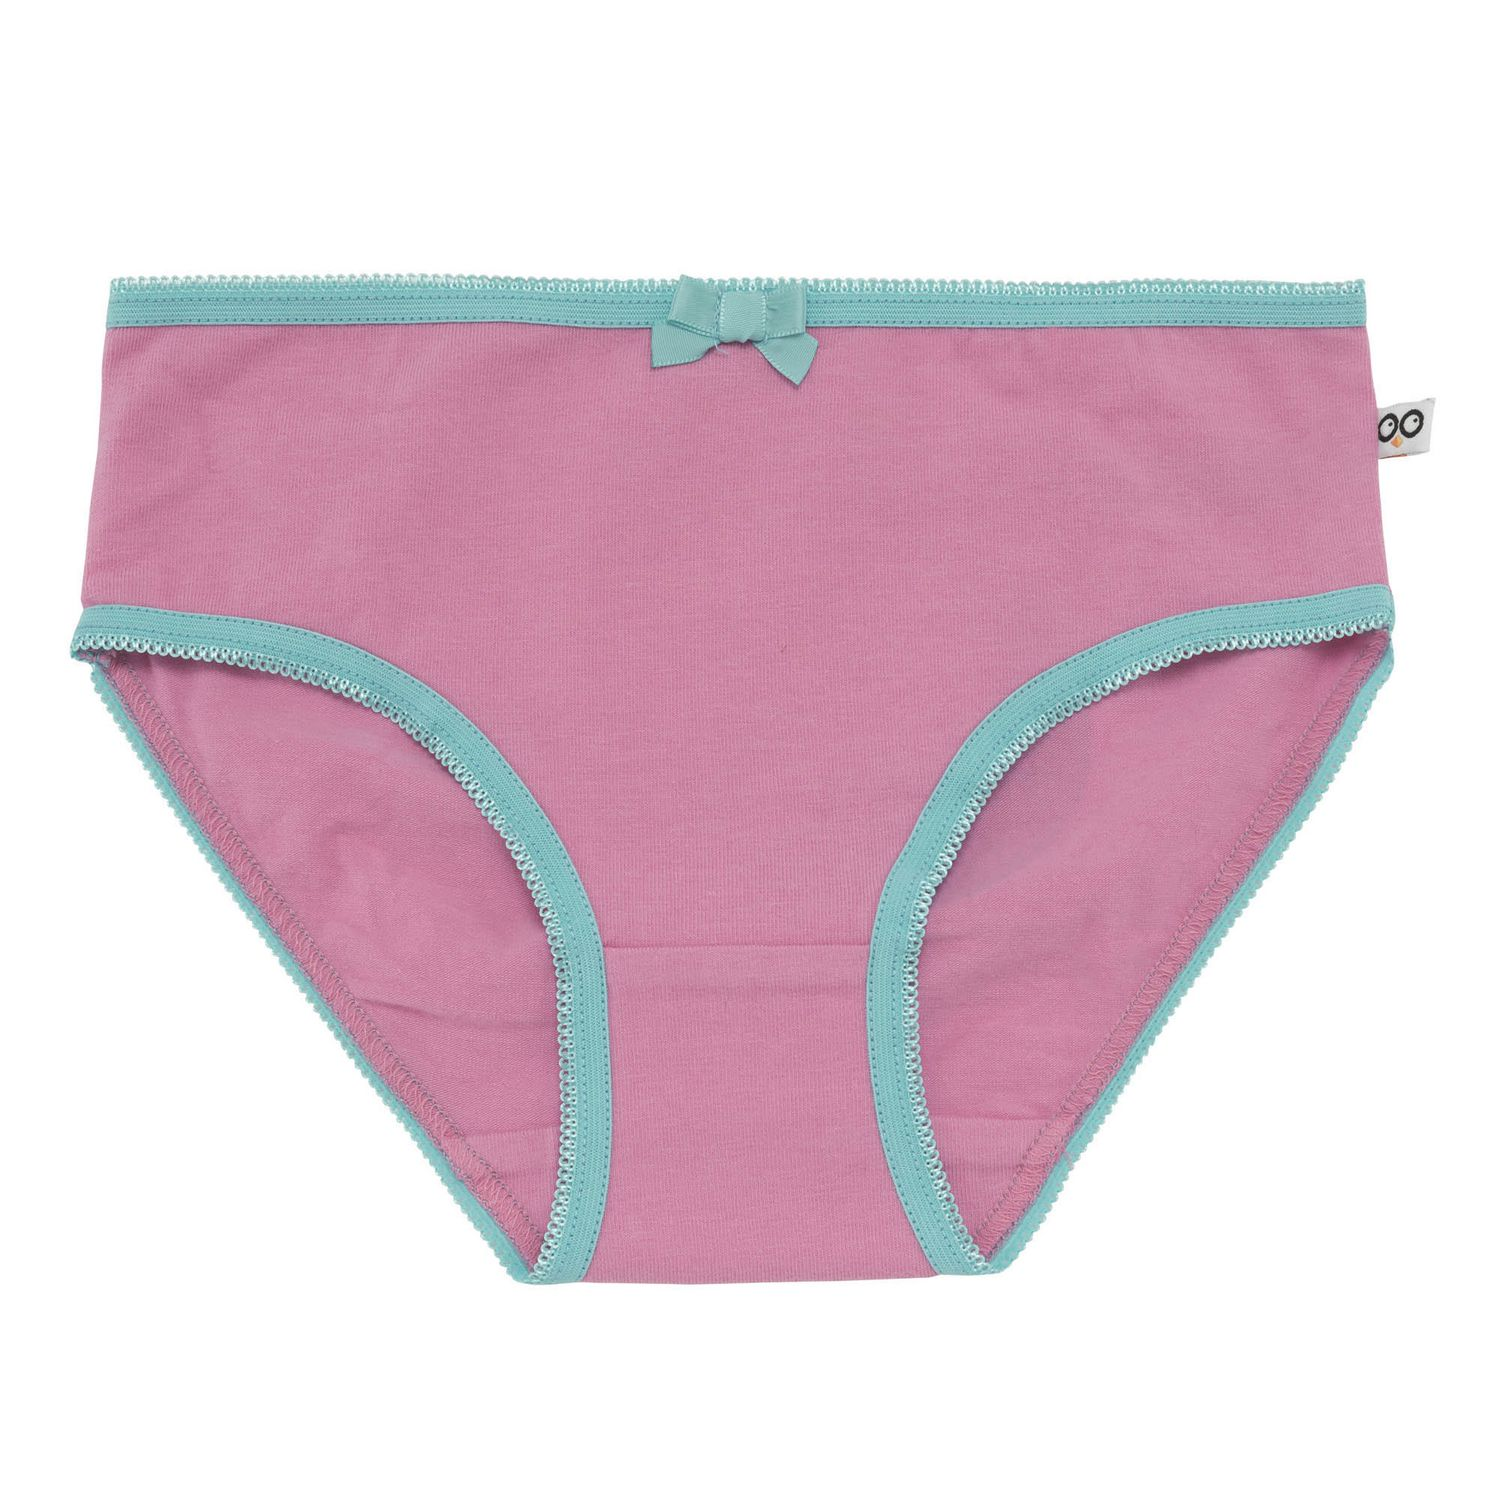 Zoocchini Organic Girls Underwear Coral Caribe - 3 Pack  ee1f4af2e